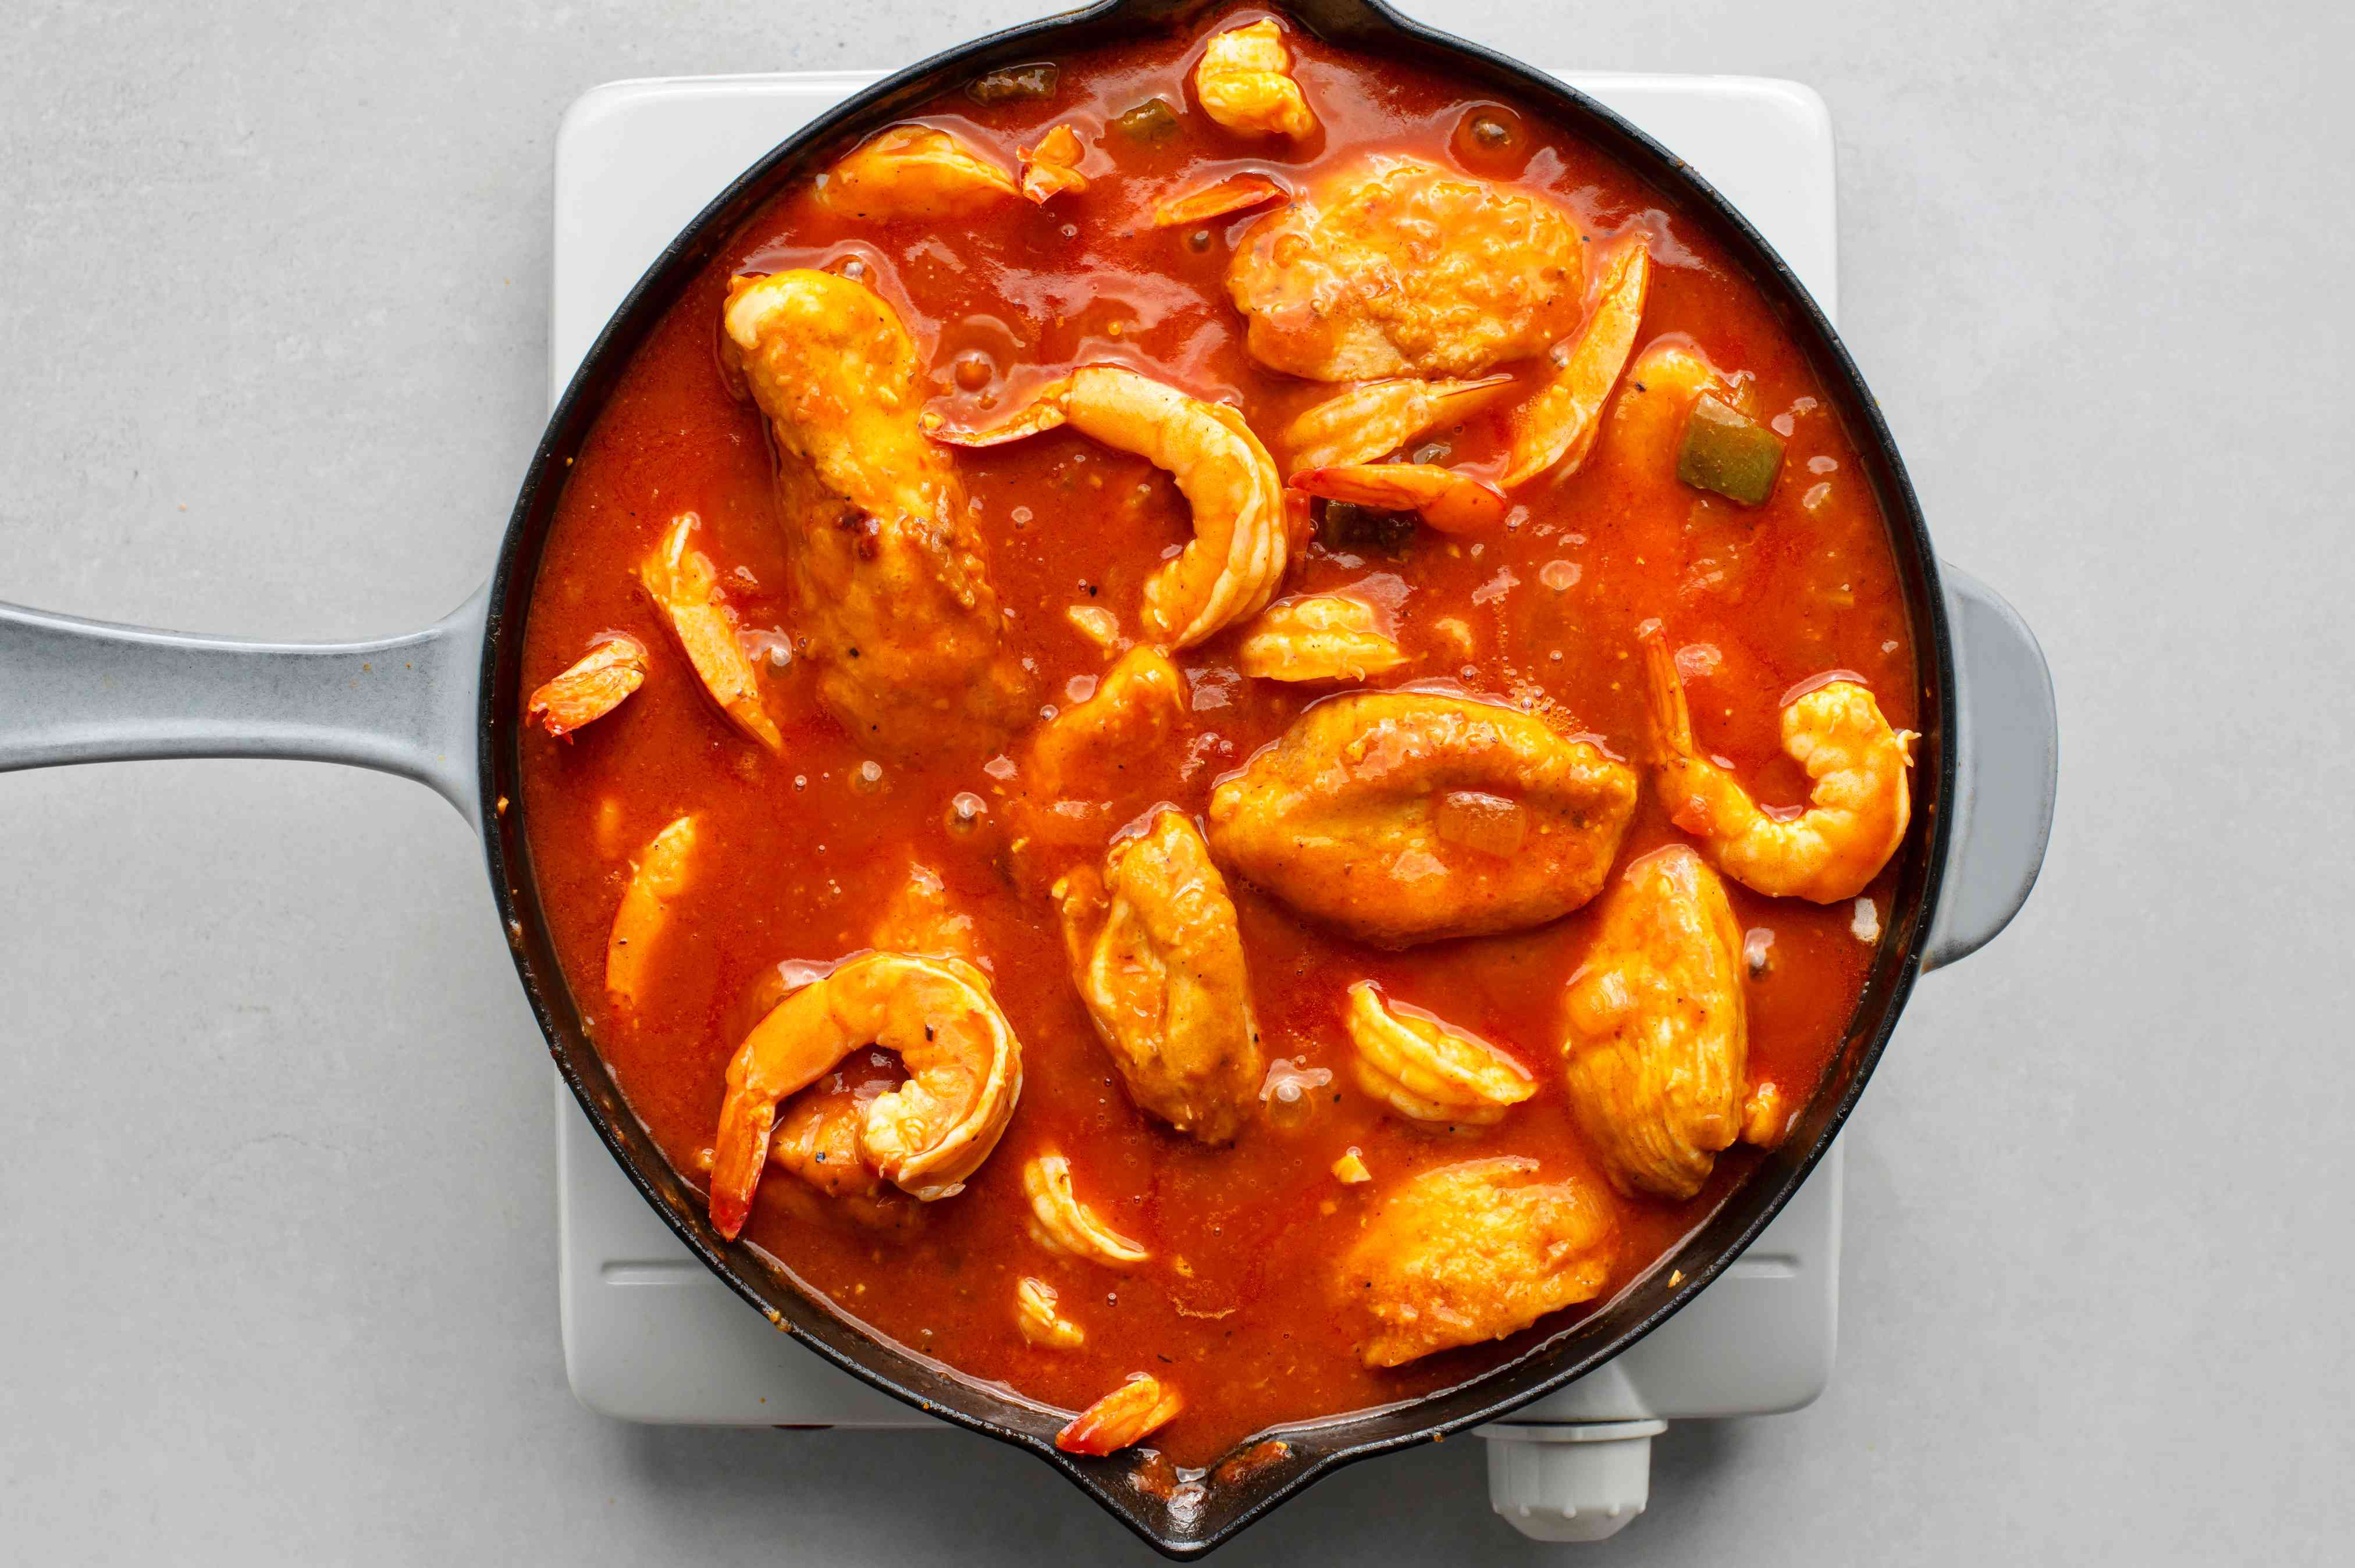 shrimp added to the chicken mixture in the skillet